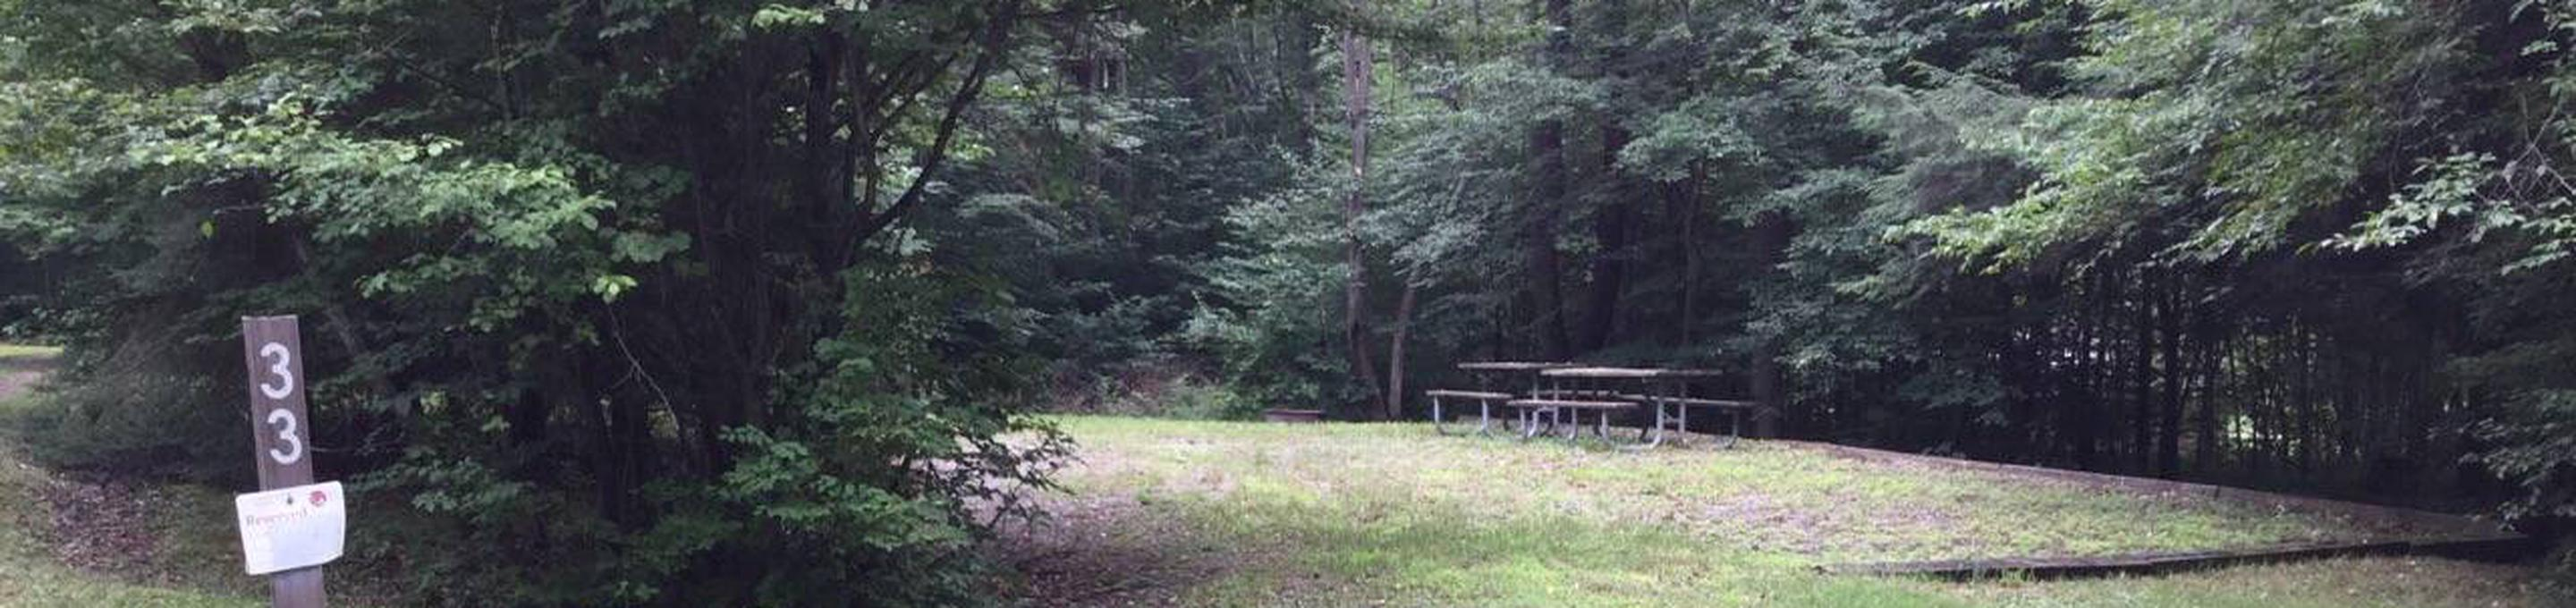 Twin Lakes Recreation Area: Site 33